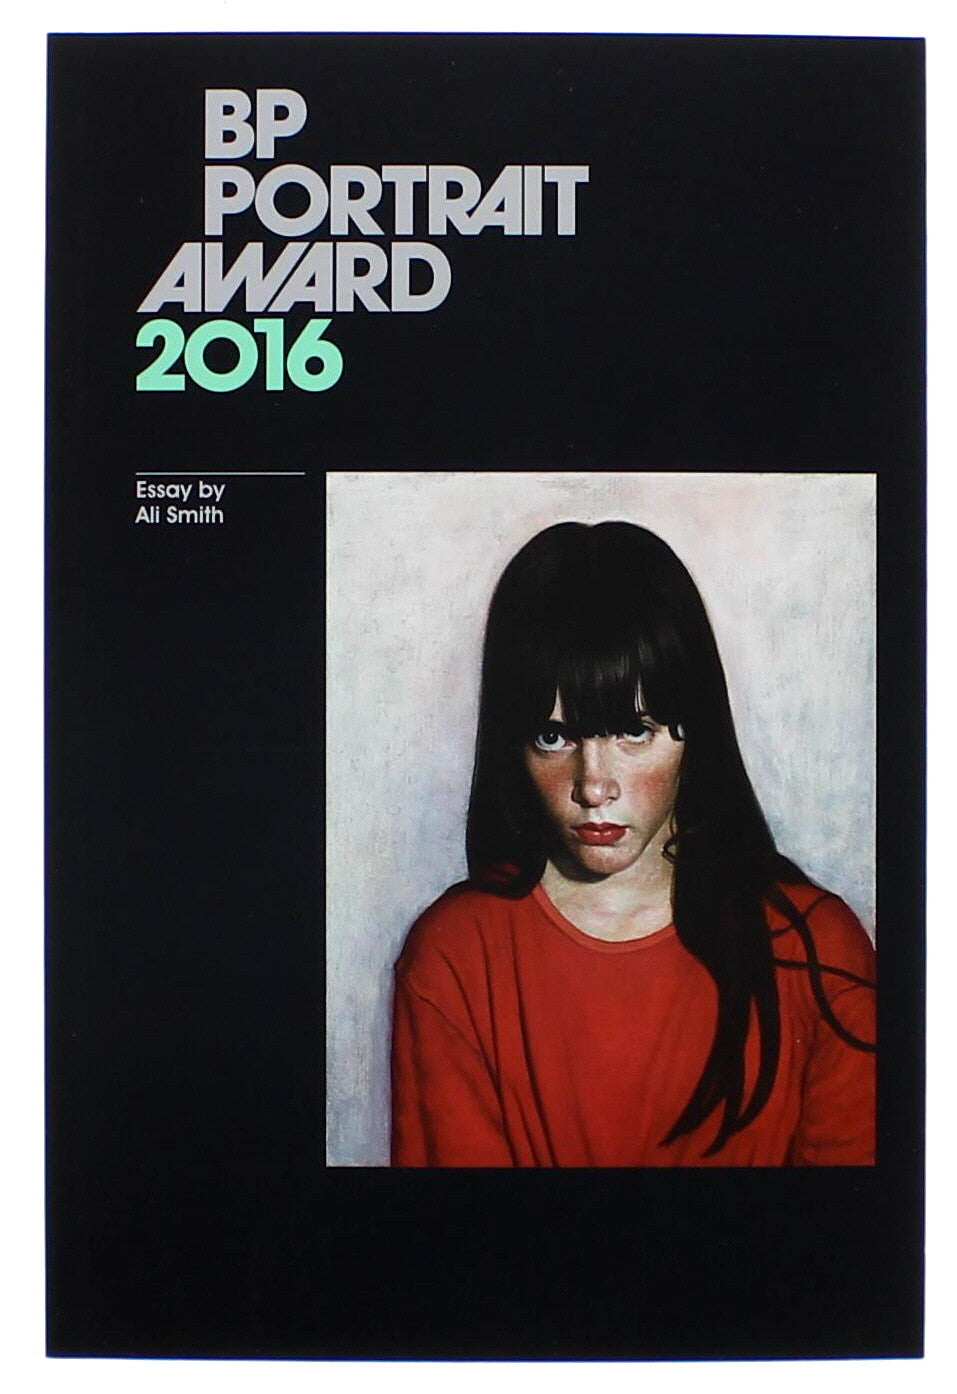 BP Portrait Award 2016 Paperback Catalogue